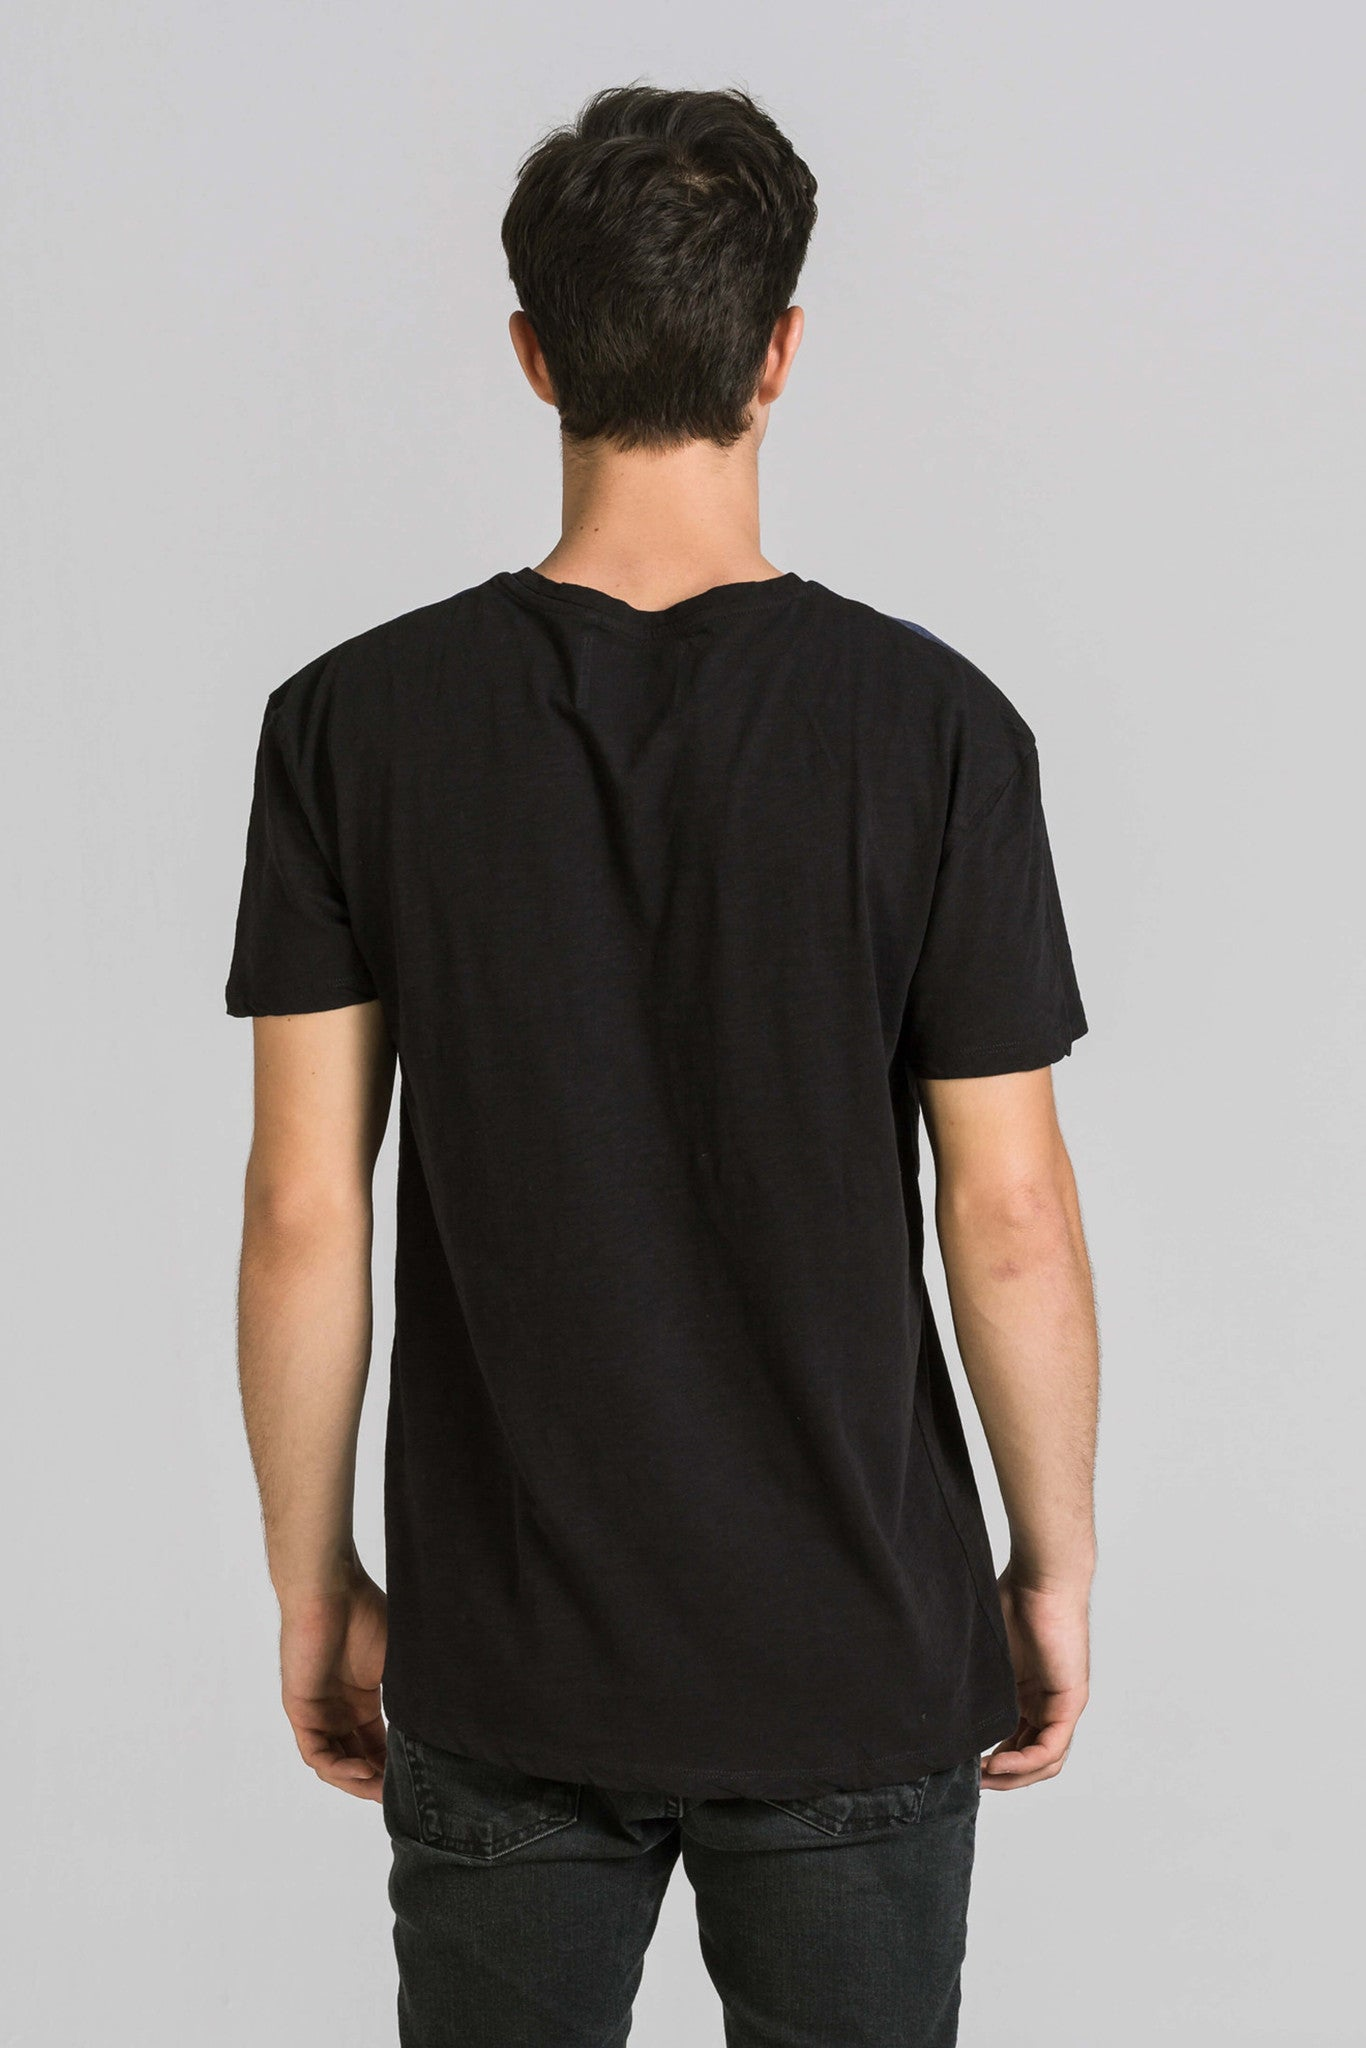 GOOD NEWS BLACK TEE